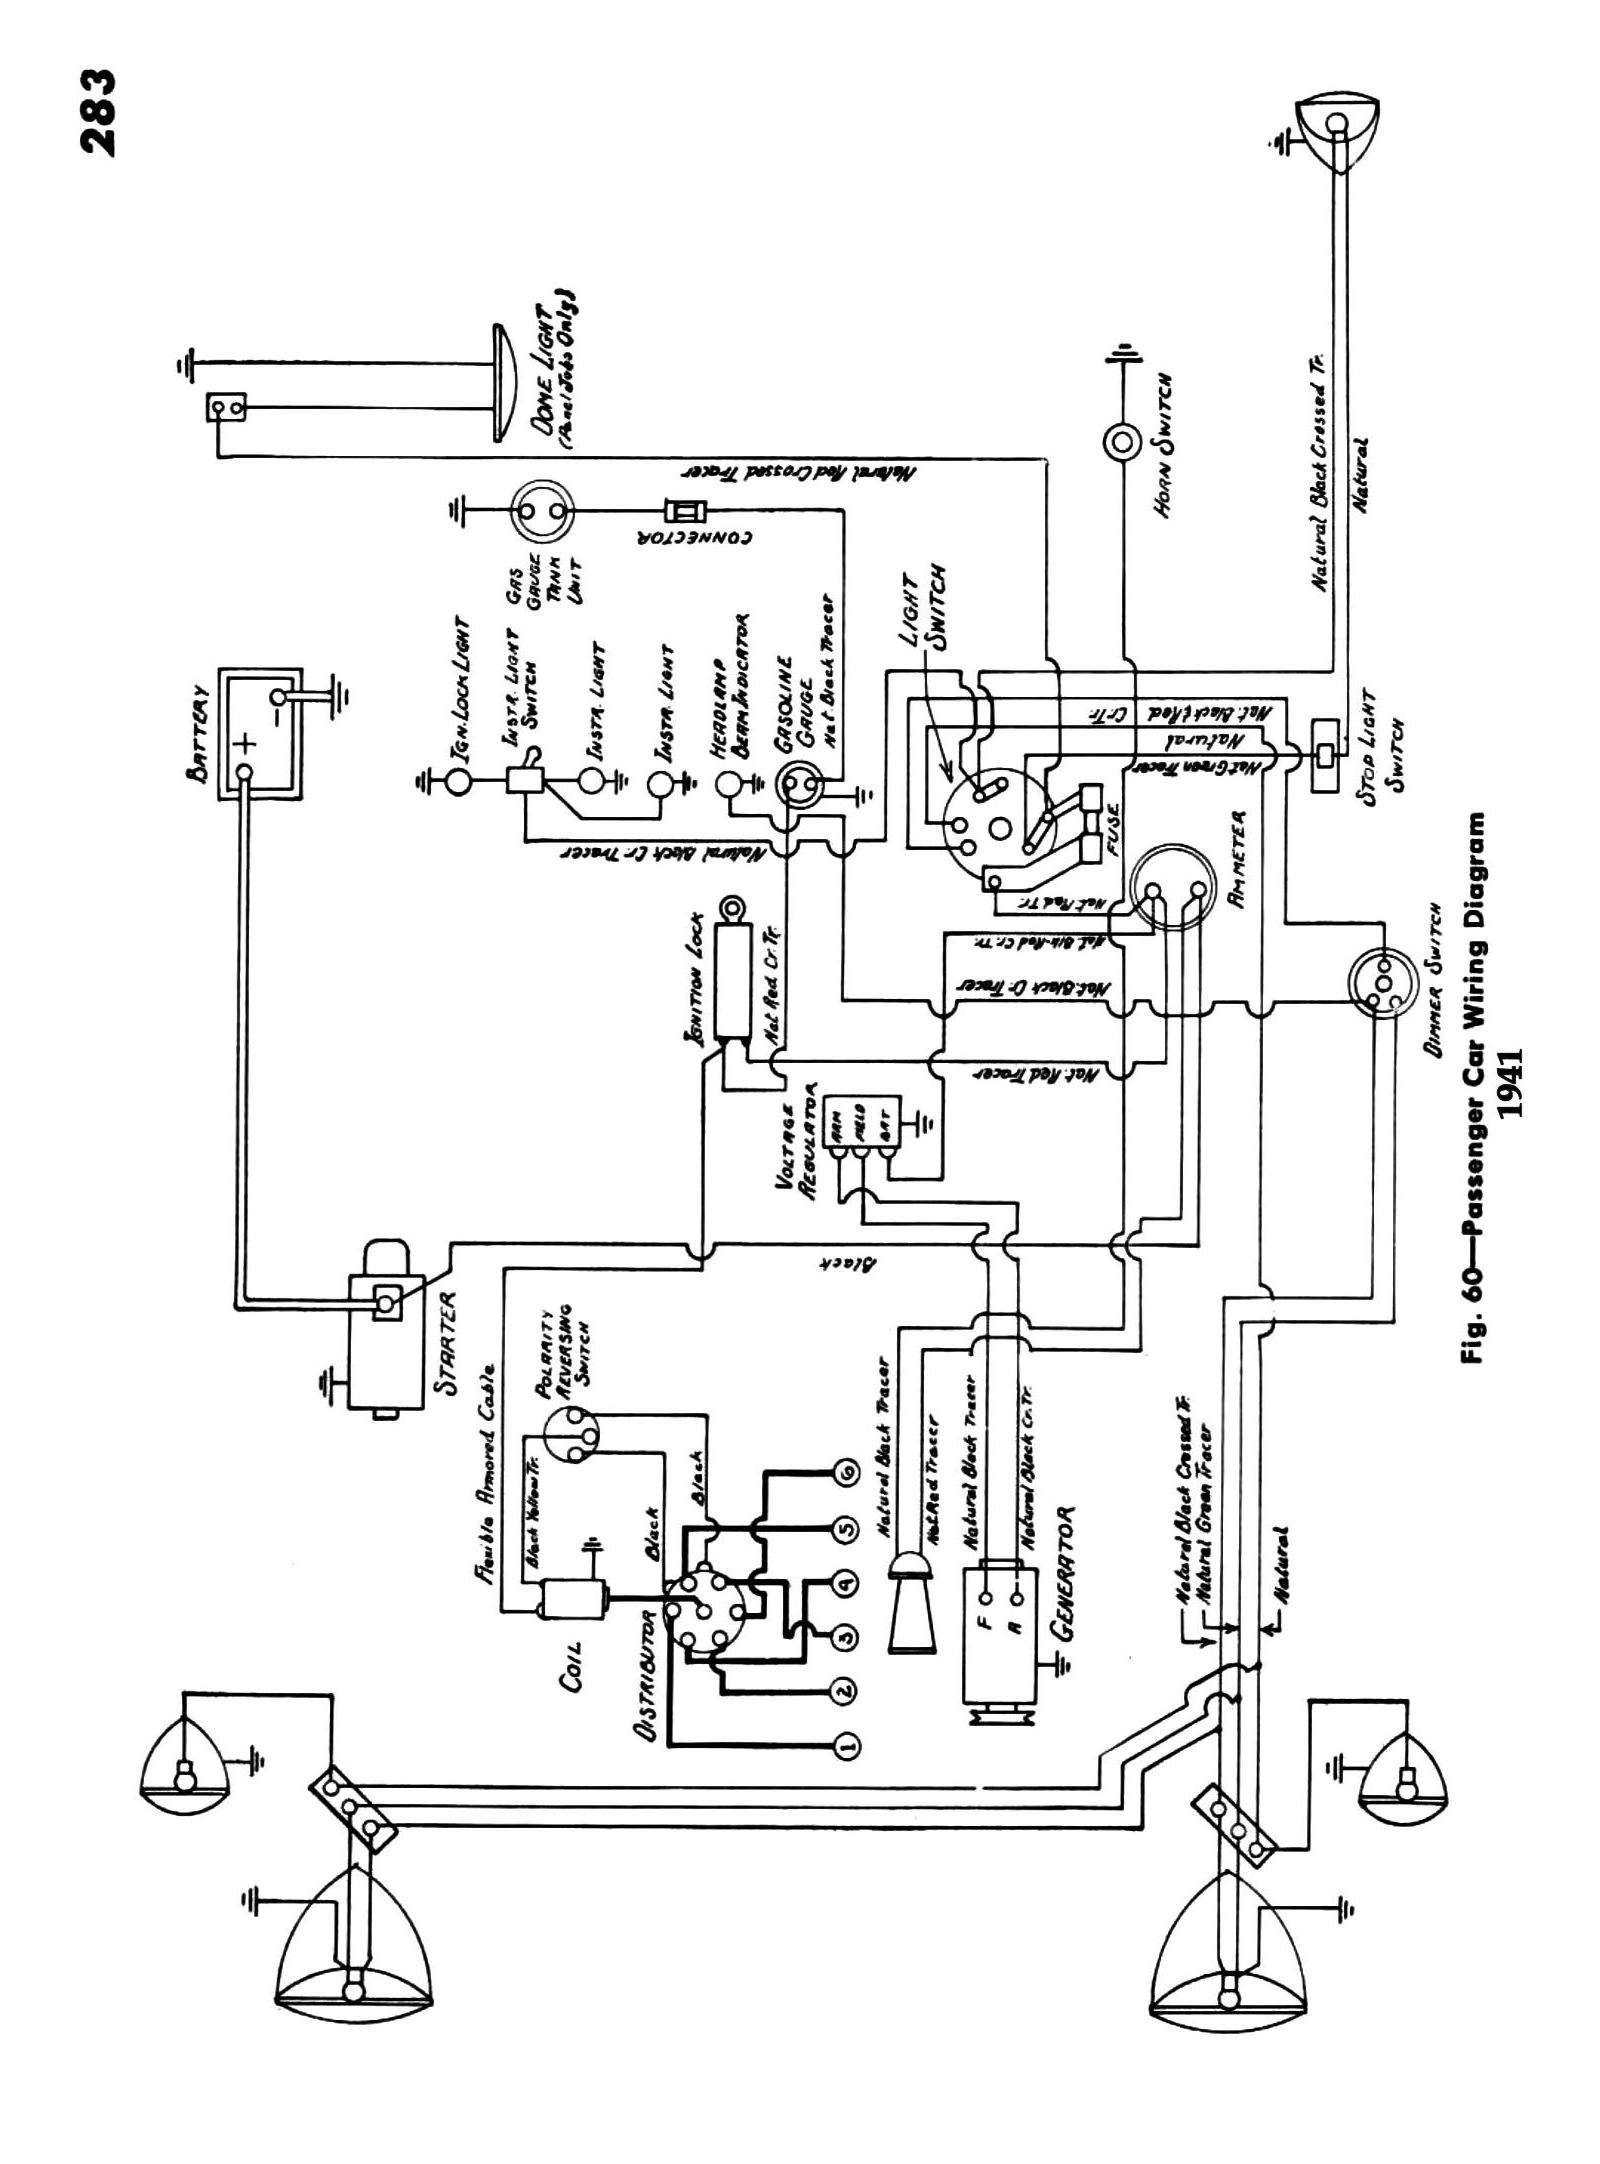 hight resolution of chevy wiring diagrams chevy motor diagram 1947 chevy wire diagram